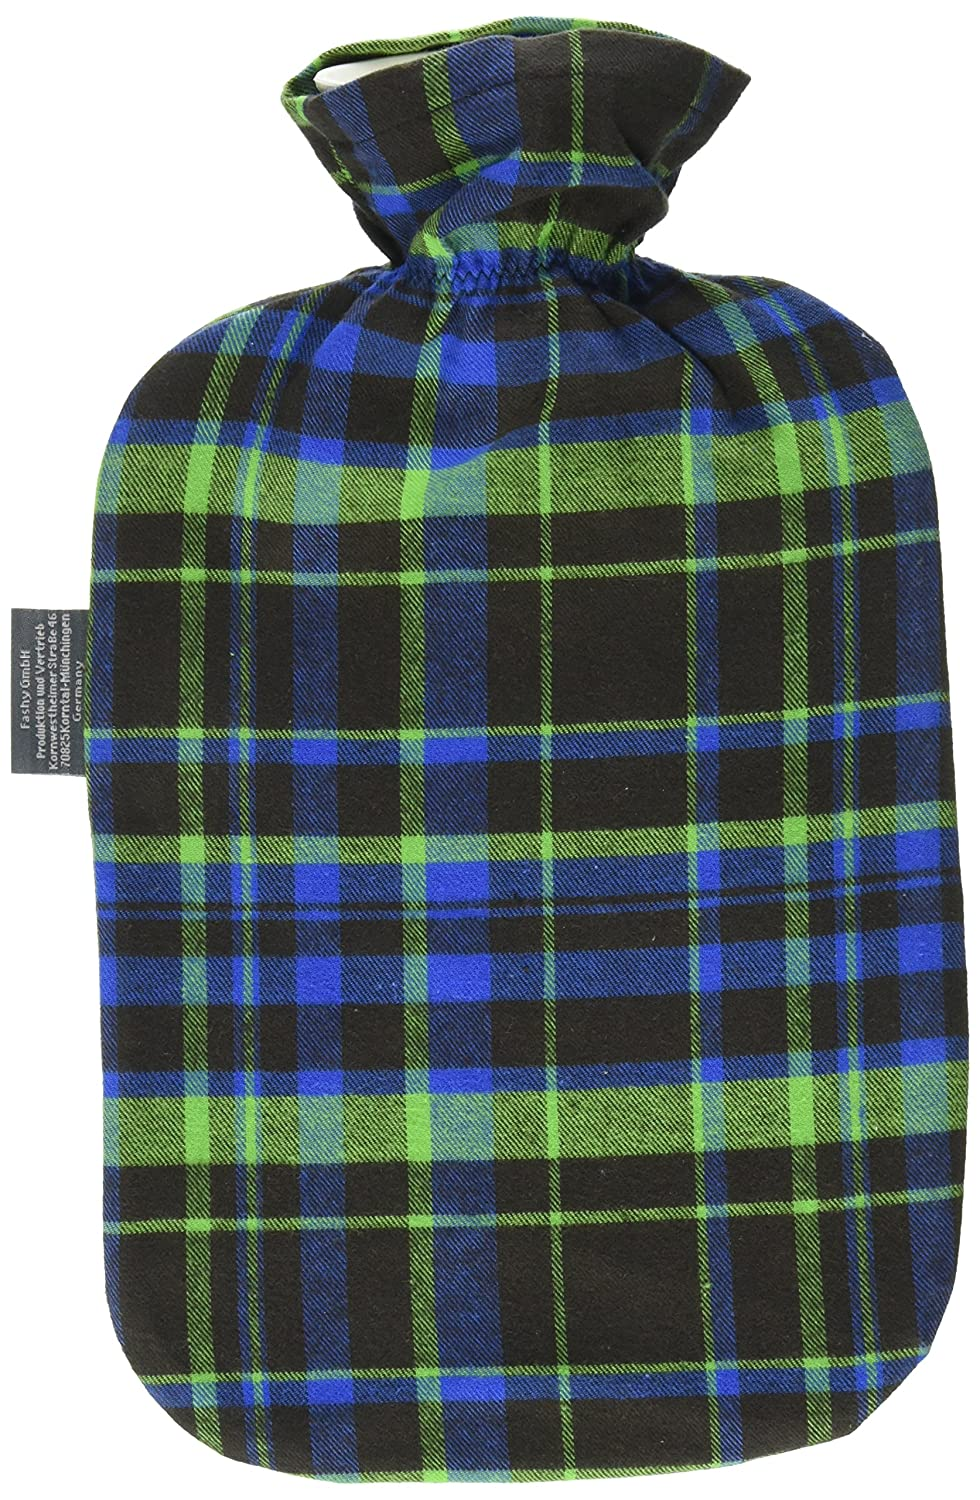 Fashy Hot Water Bottle with Tartan Cover